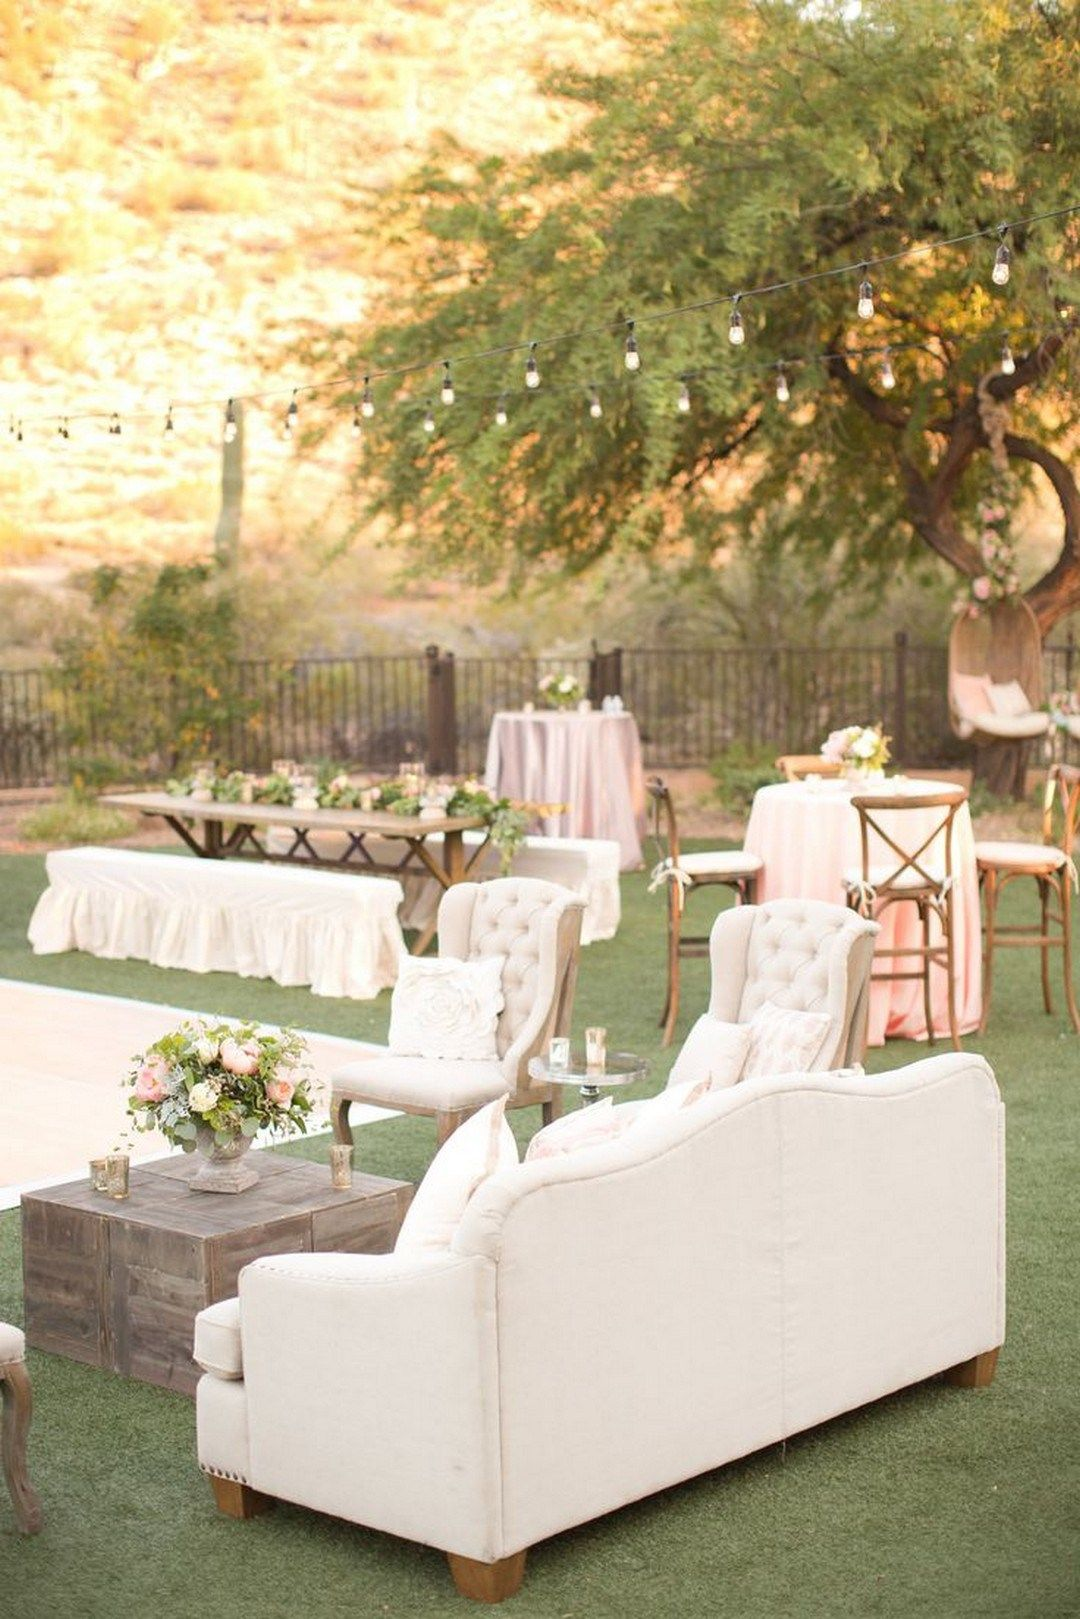 99 sweet ideas for romantic backyard outdoor weddings 22